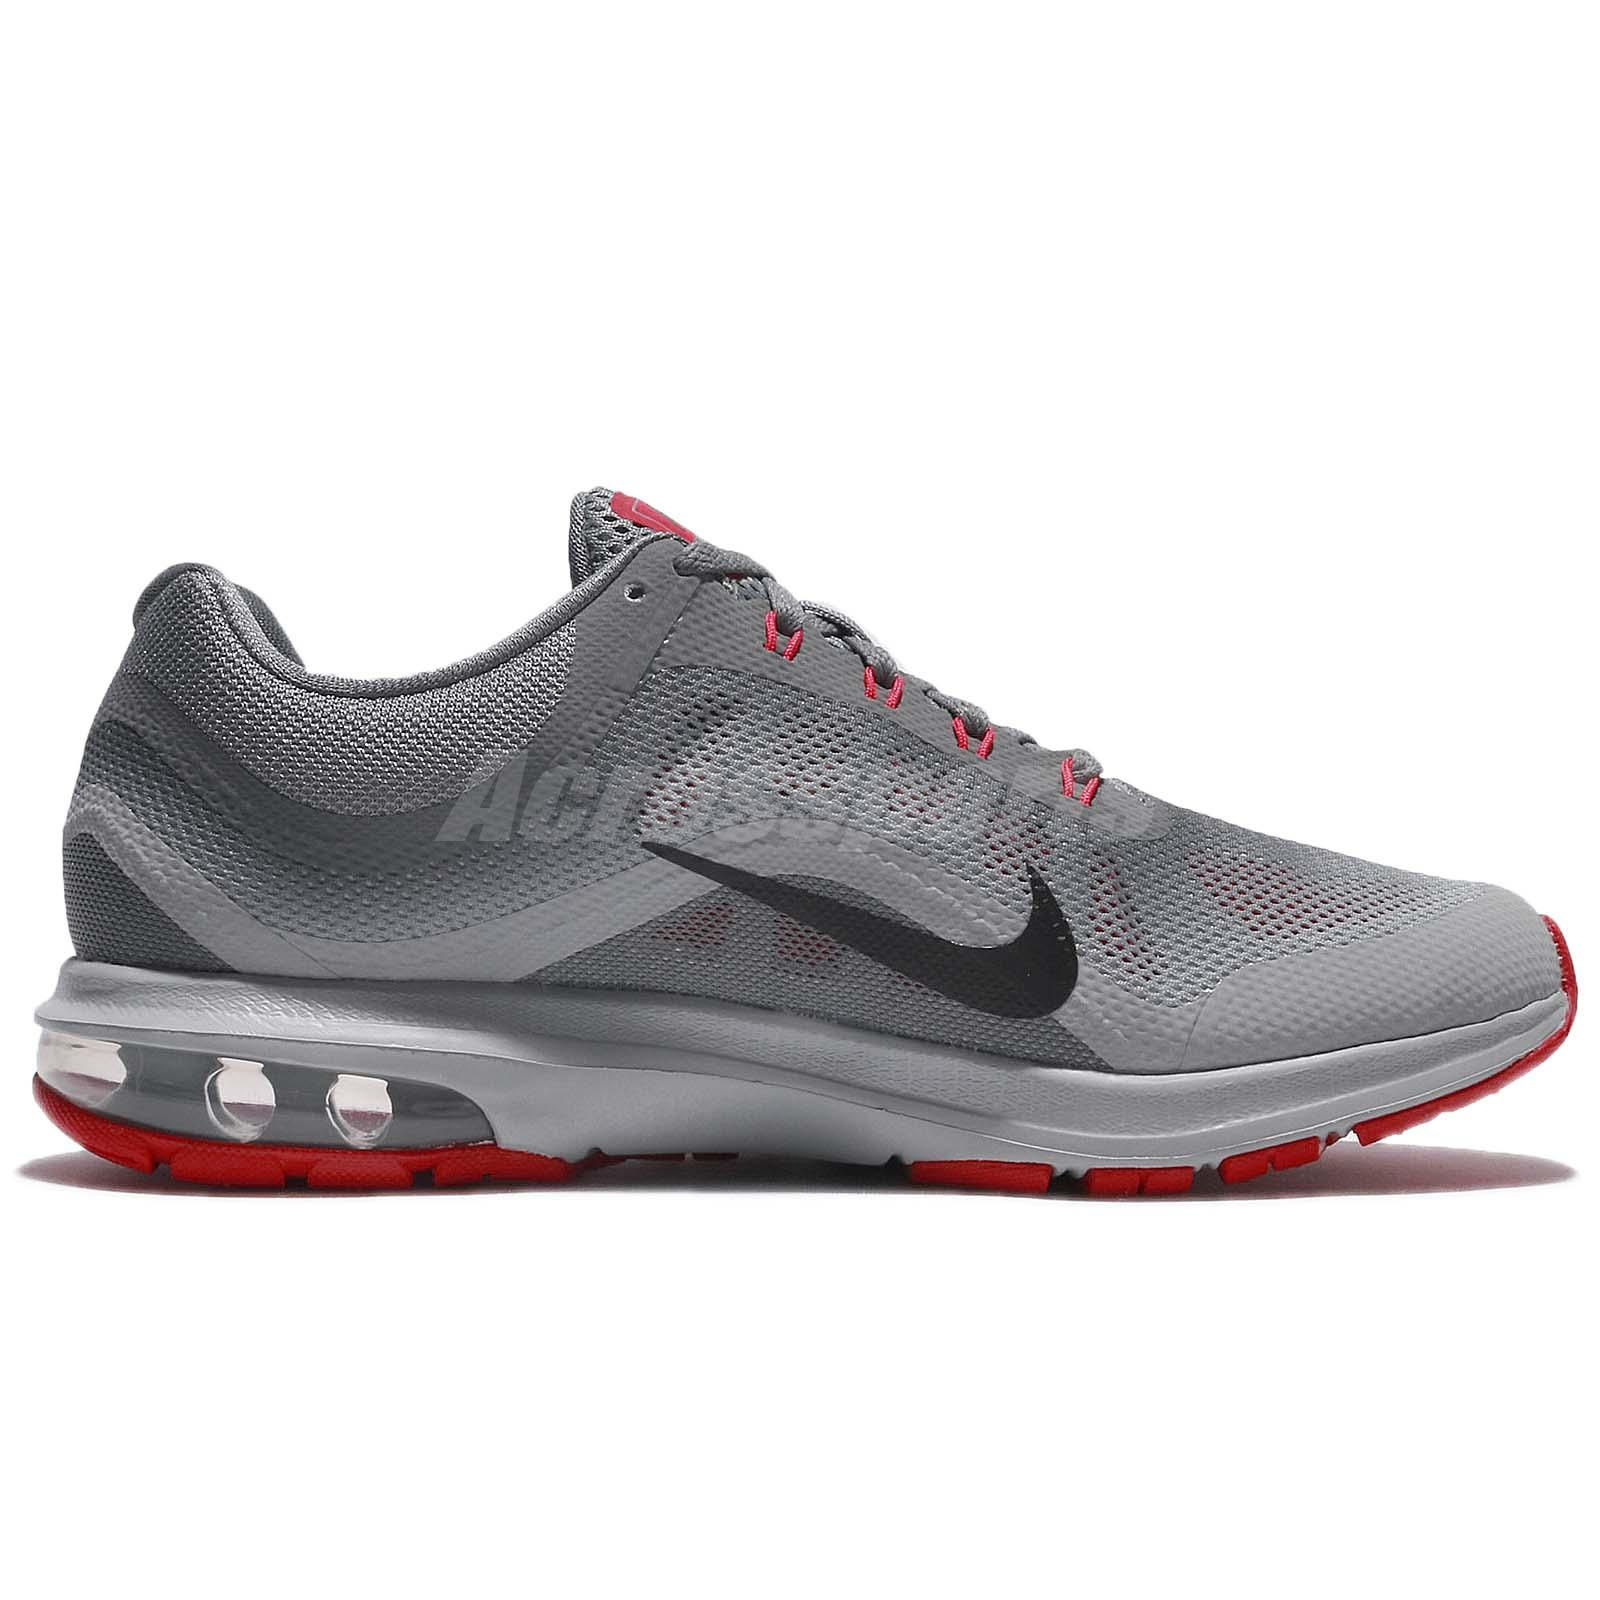 1e53f51e85e Nike Air Max Dynasty 2 II Wolf Grey Black Men Running Shoes Sneakers ...